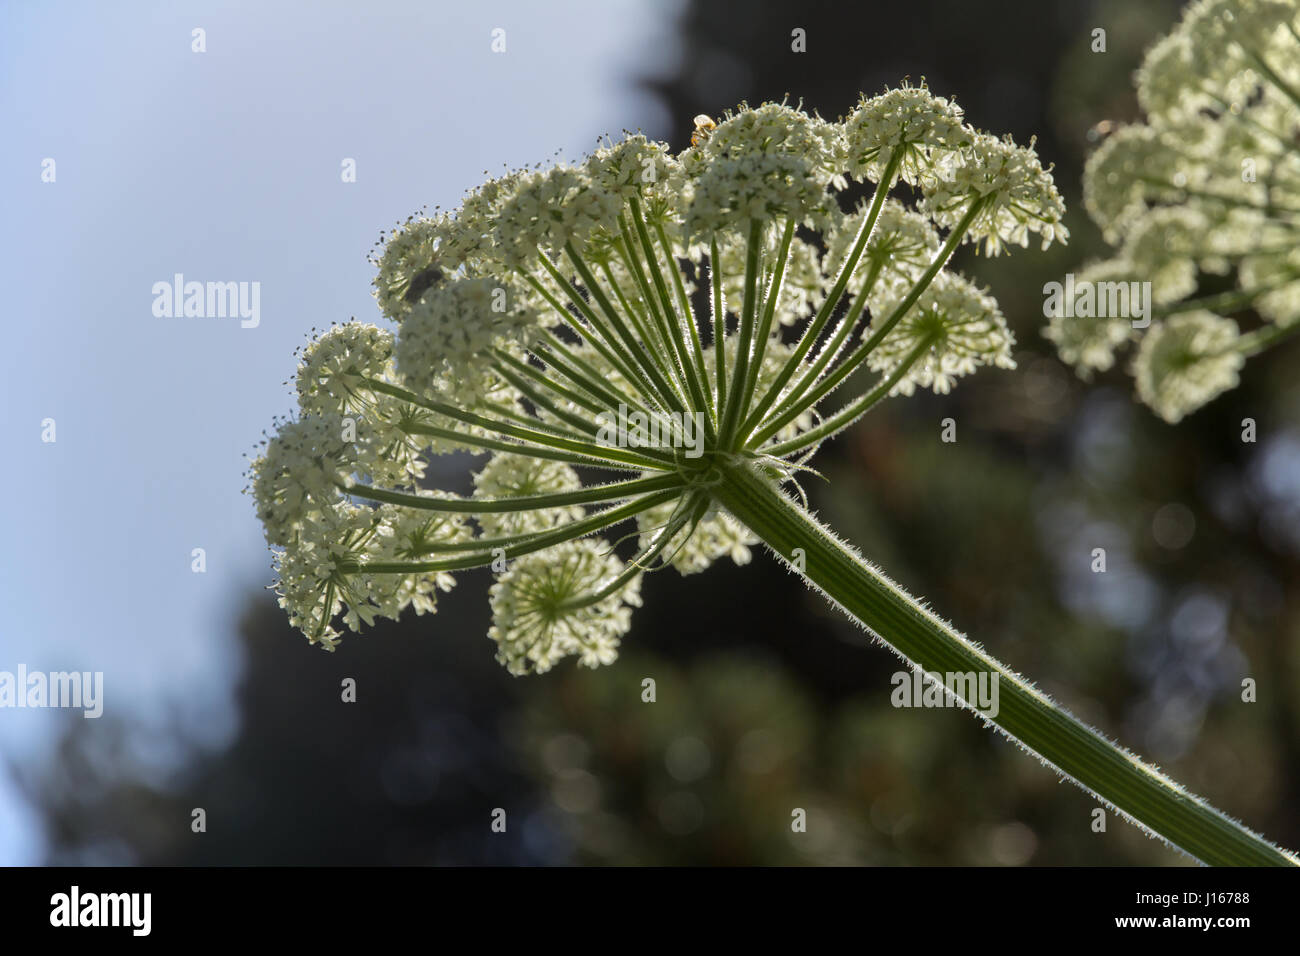 Giant hogweed taken from below showing petals and stamens.  Fine hairs on stems are backlit and bright. - Stock Image